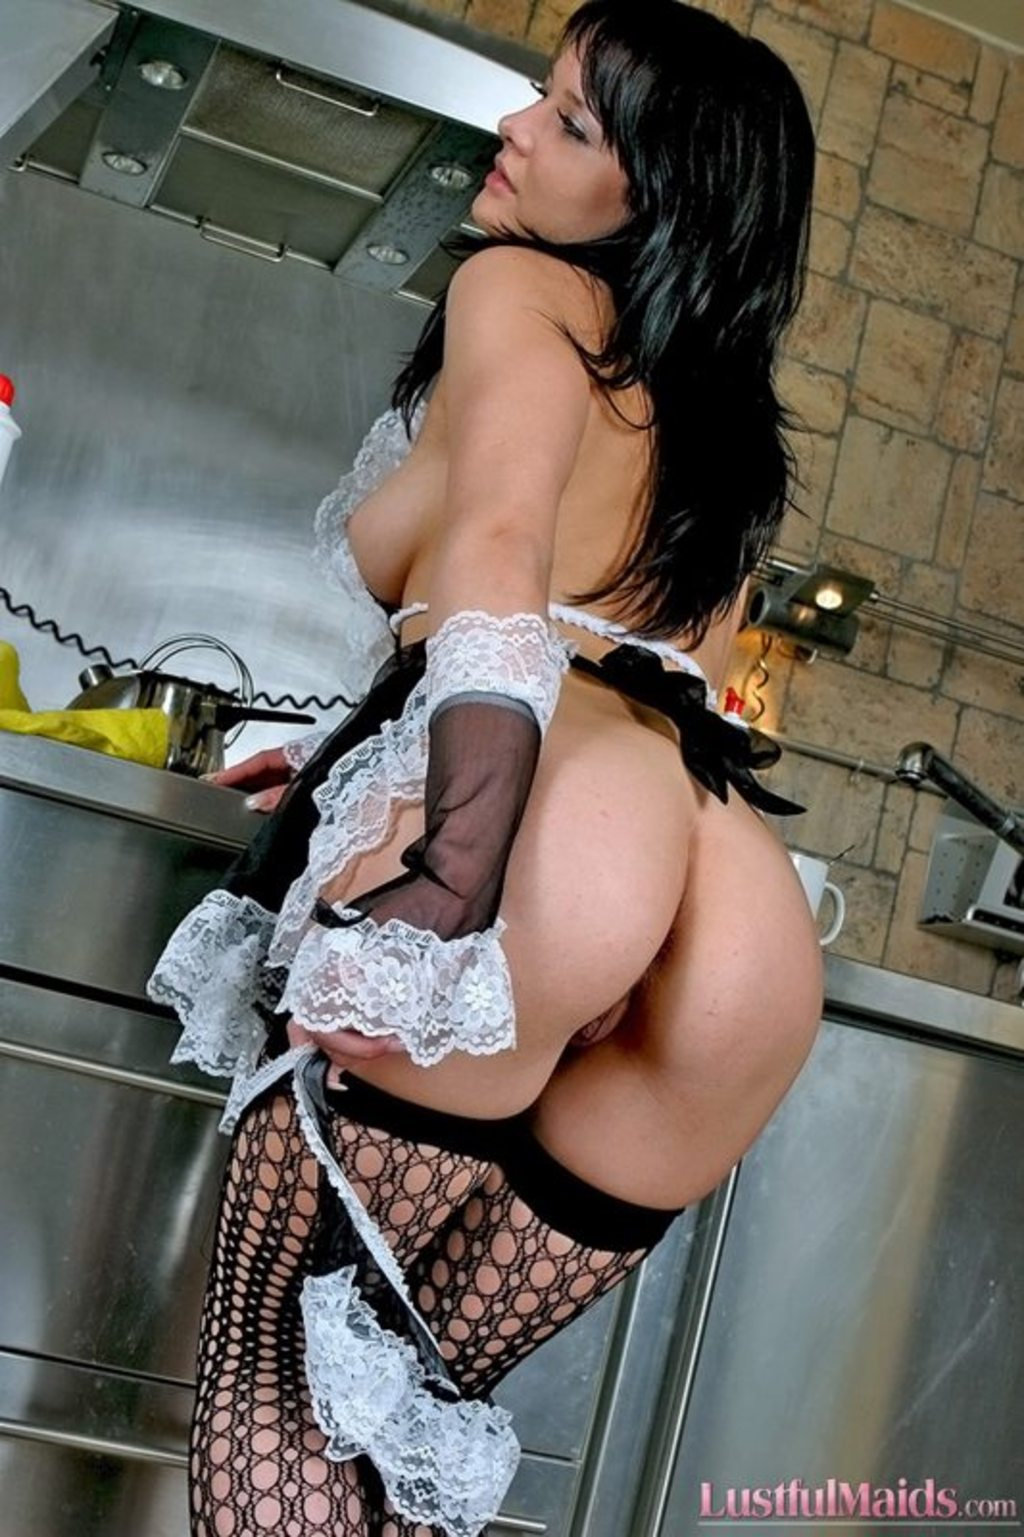 Latina maid with big round tits moans